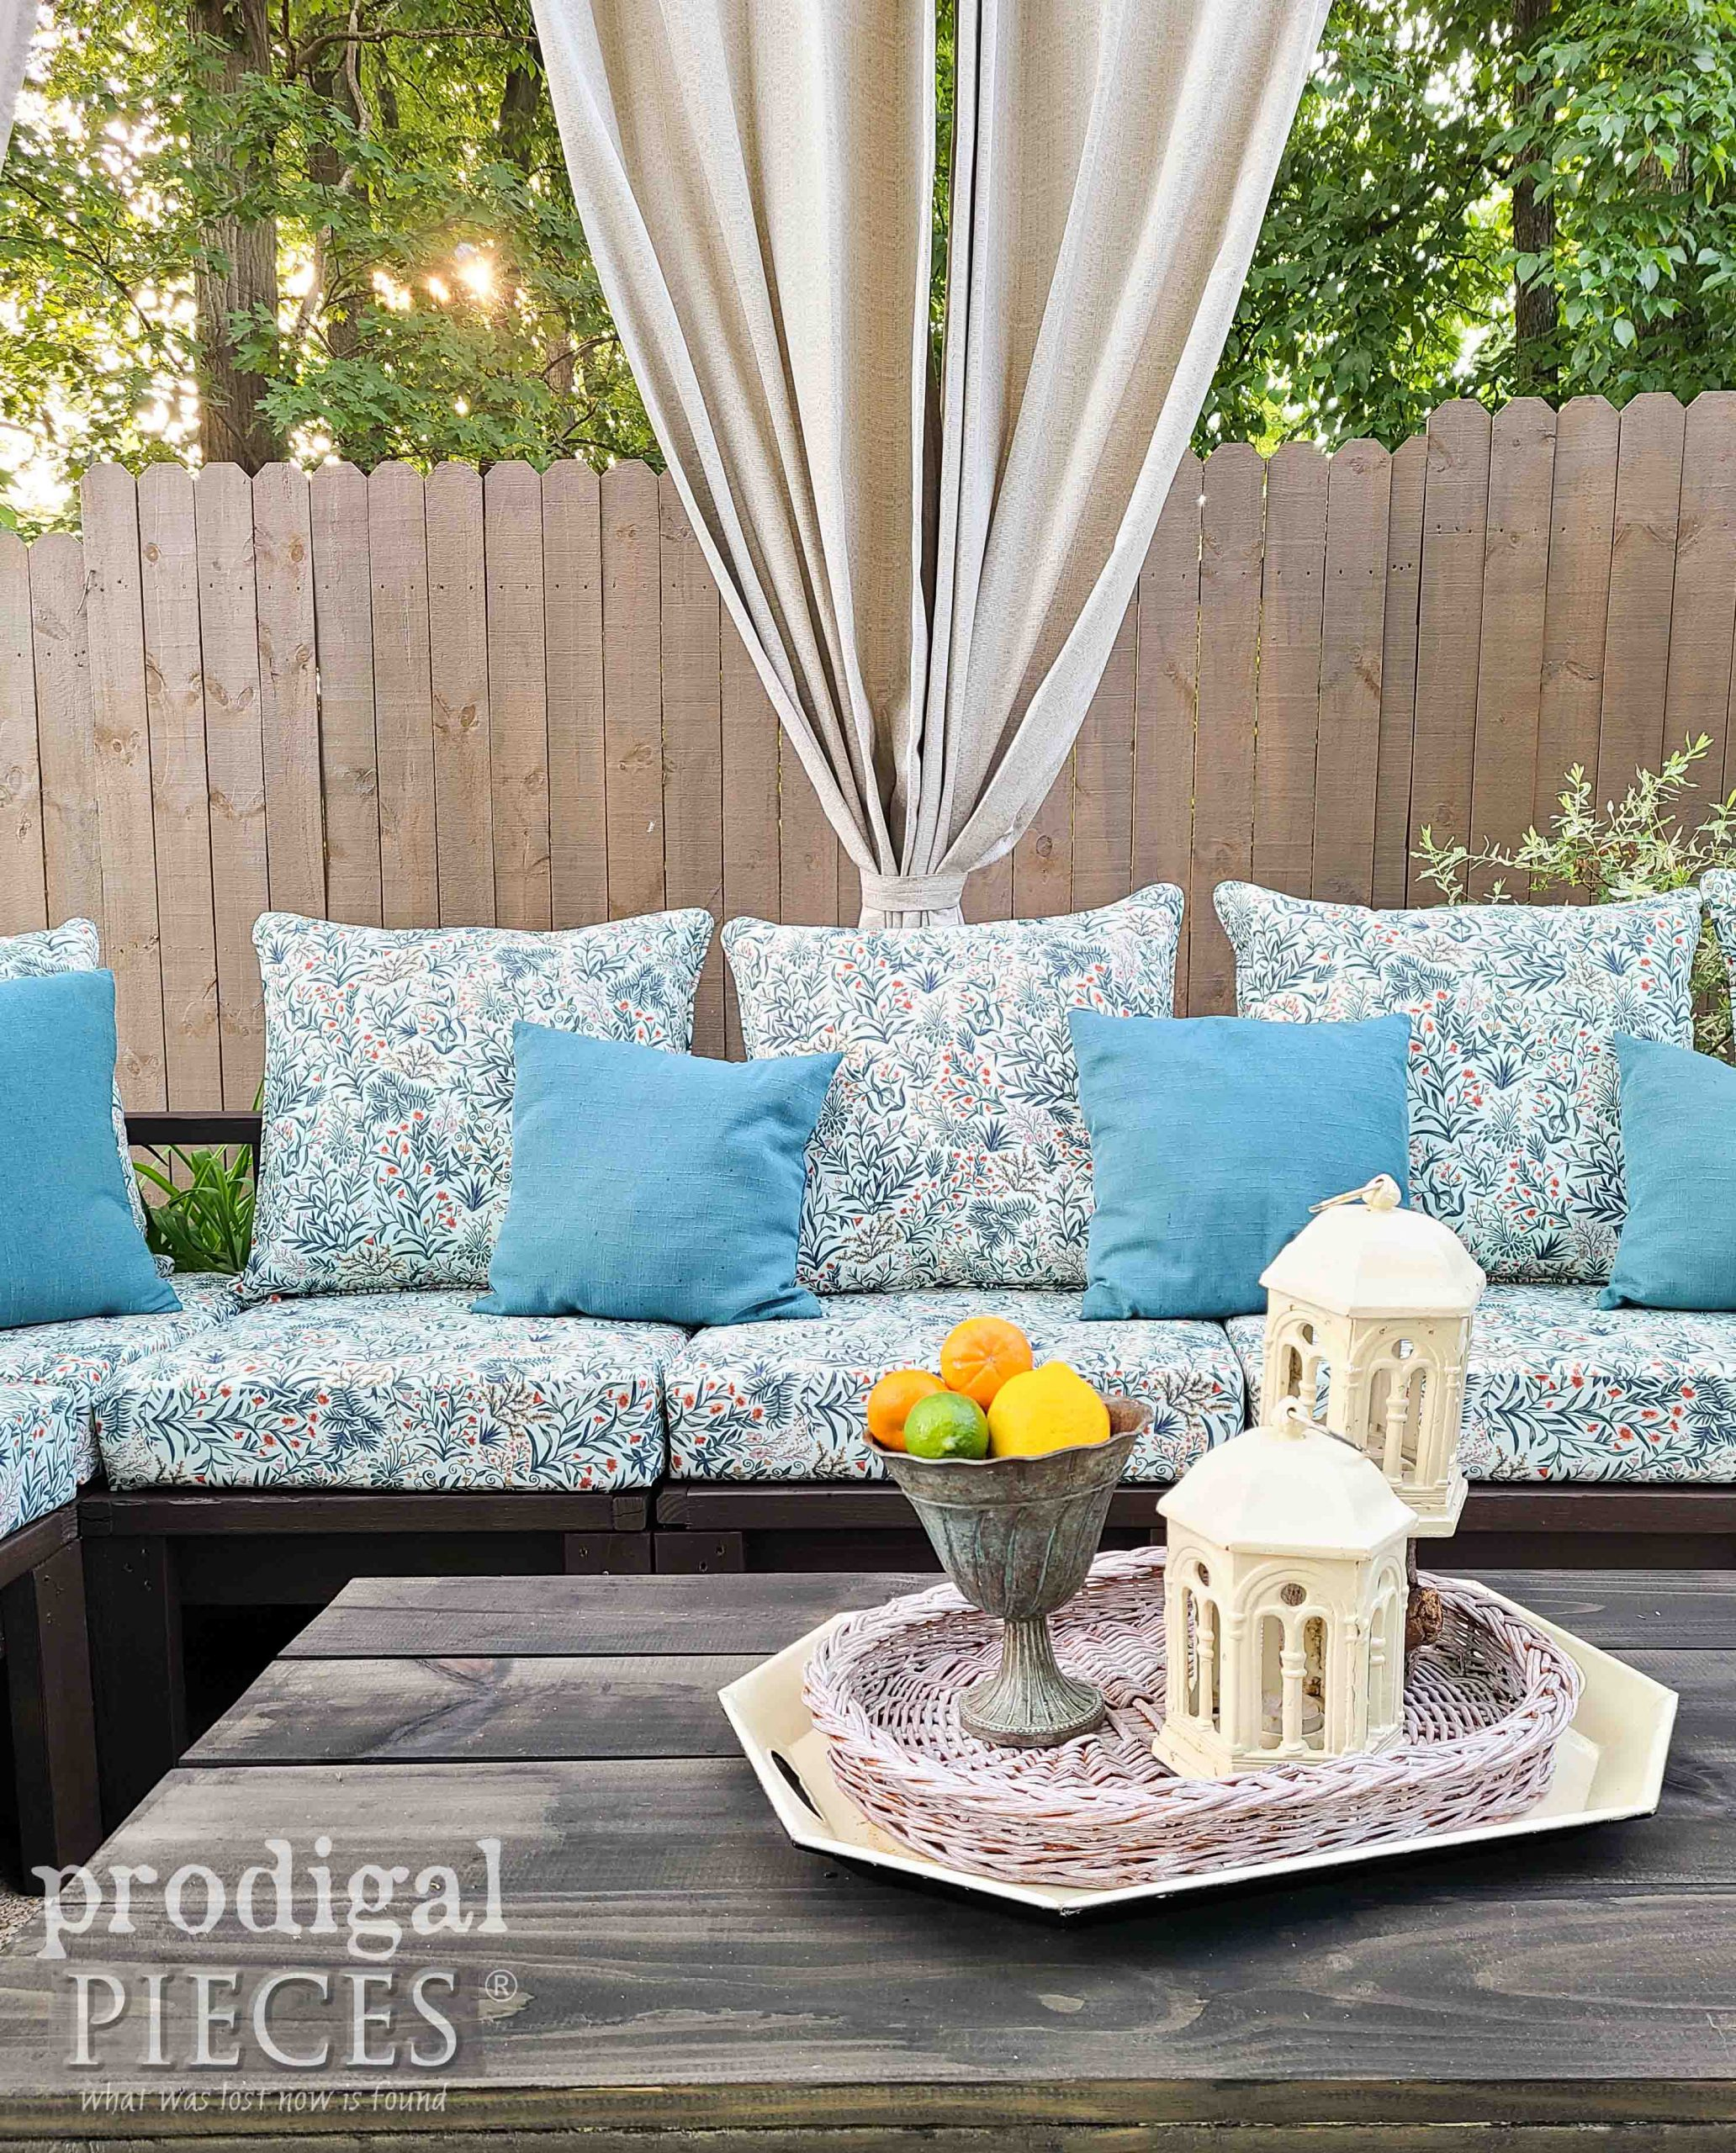 Outdoor Patio Cushions on DIY Sectional Sofa by Larissa of Prodigal Pieces | prodigalpieces.com #prodigalpieces #diy #home #patio